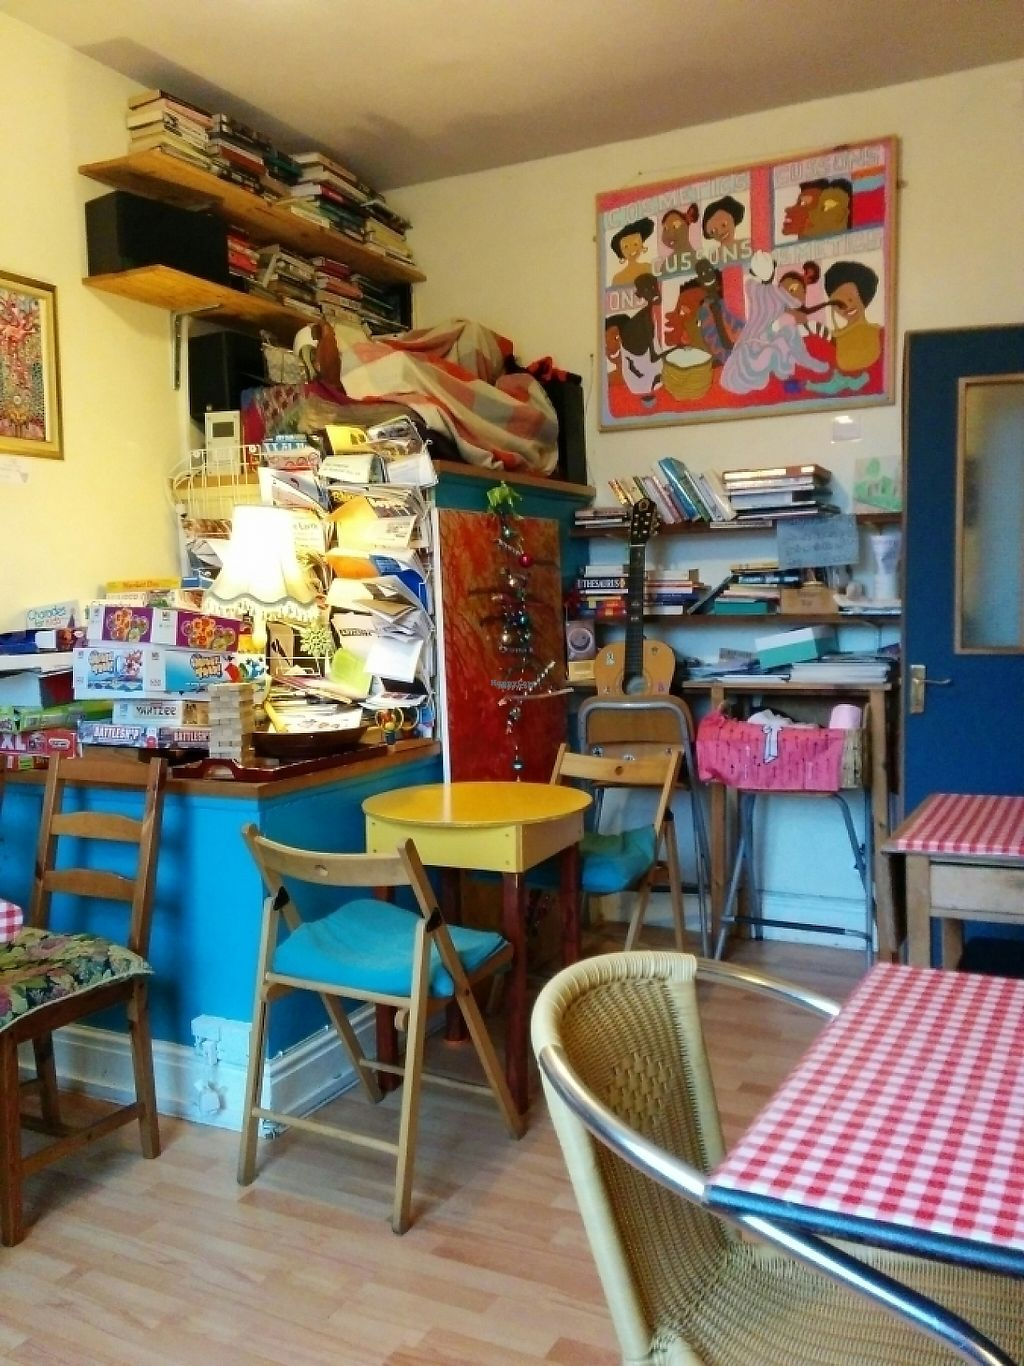 "Photo of Yaffle Cafe and Bookshop  by <a href=""/members/profile/CLRtraveller"">CLRtraveller</a> <br/>interior <br/> January 26, 2017  - <a href='/contact/abuse/image/22048/217043'>Report</a>"